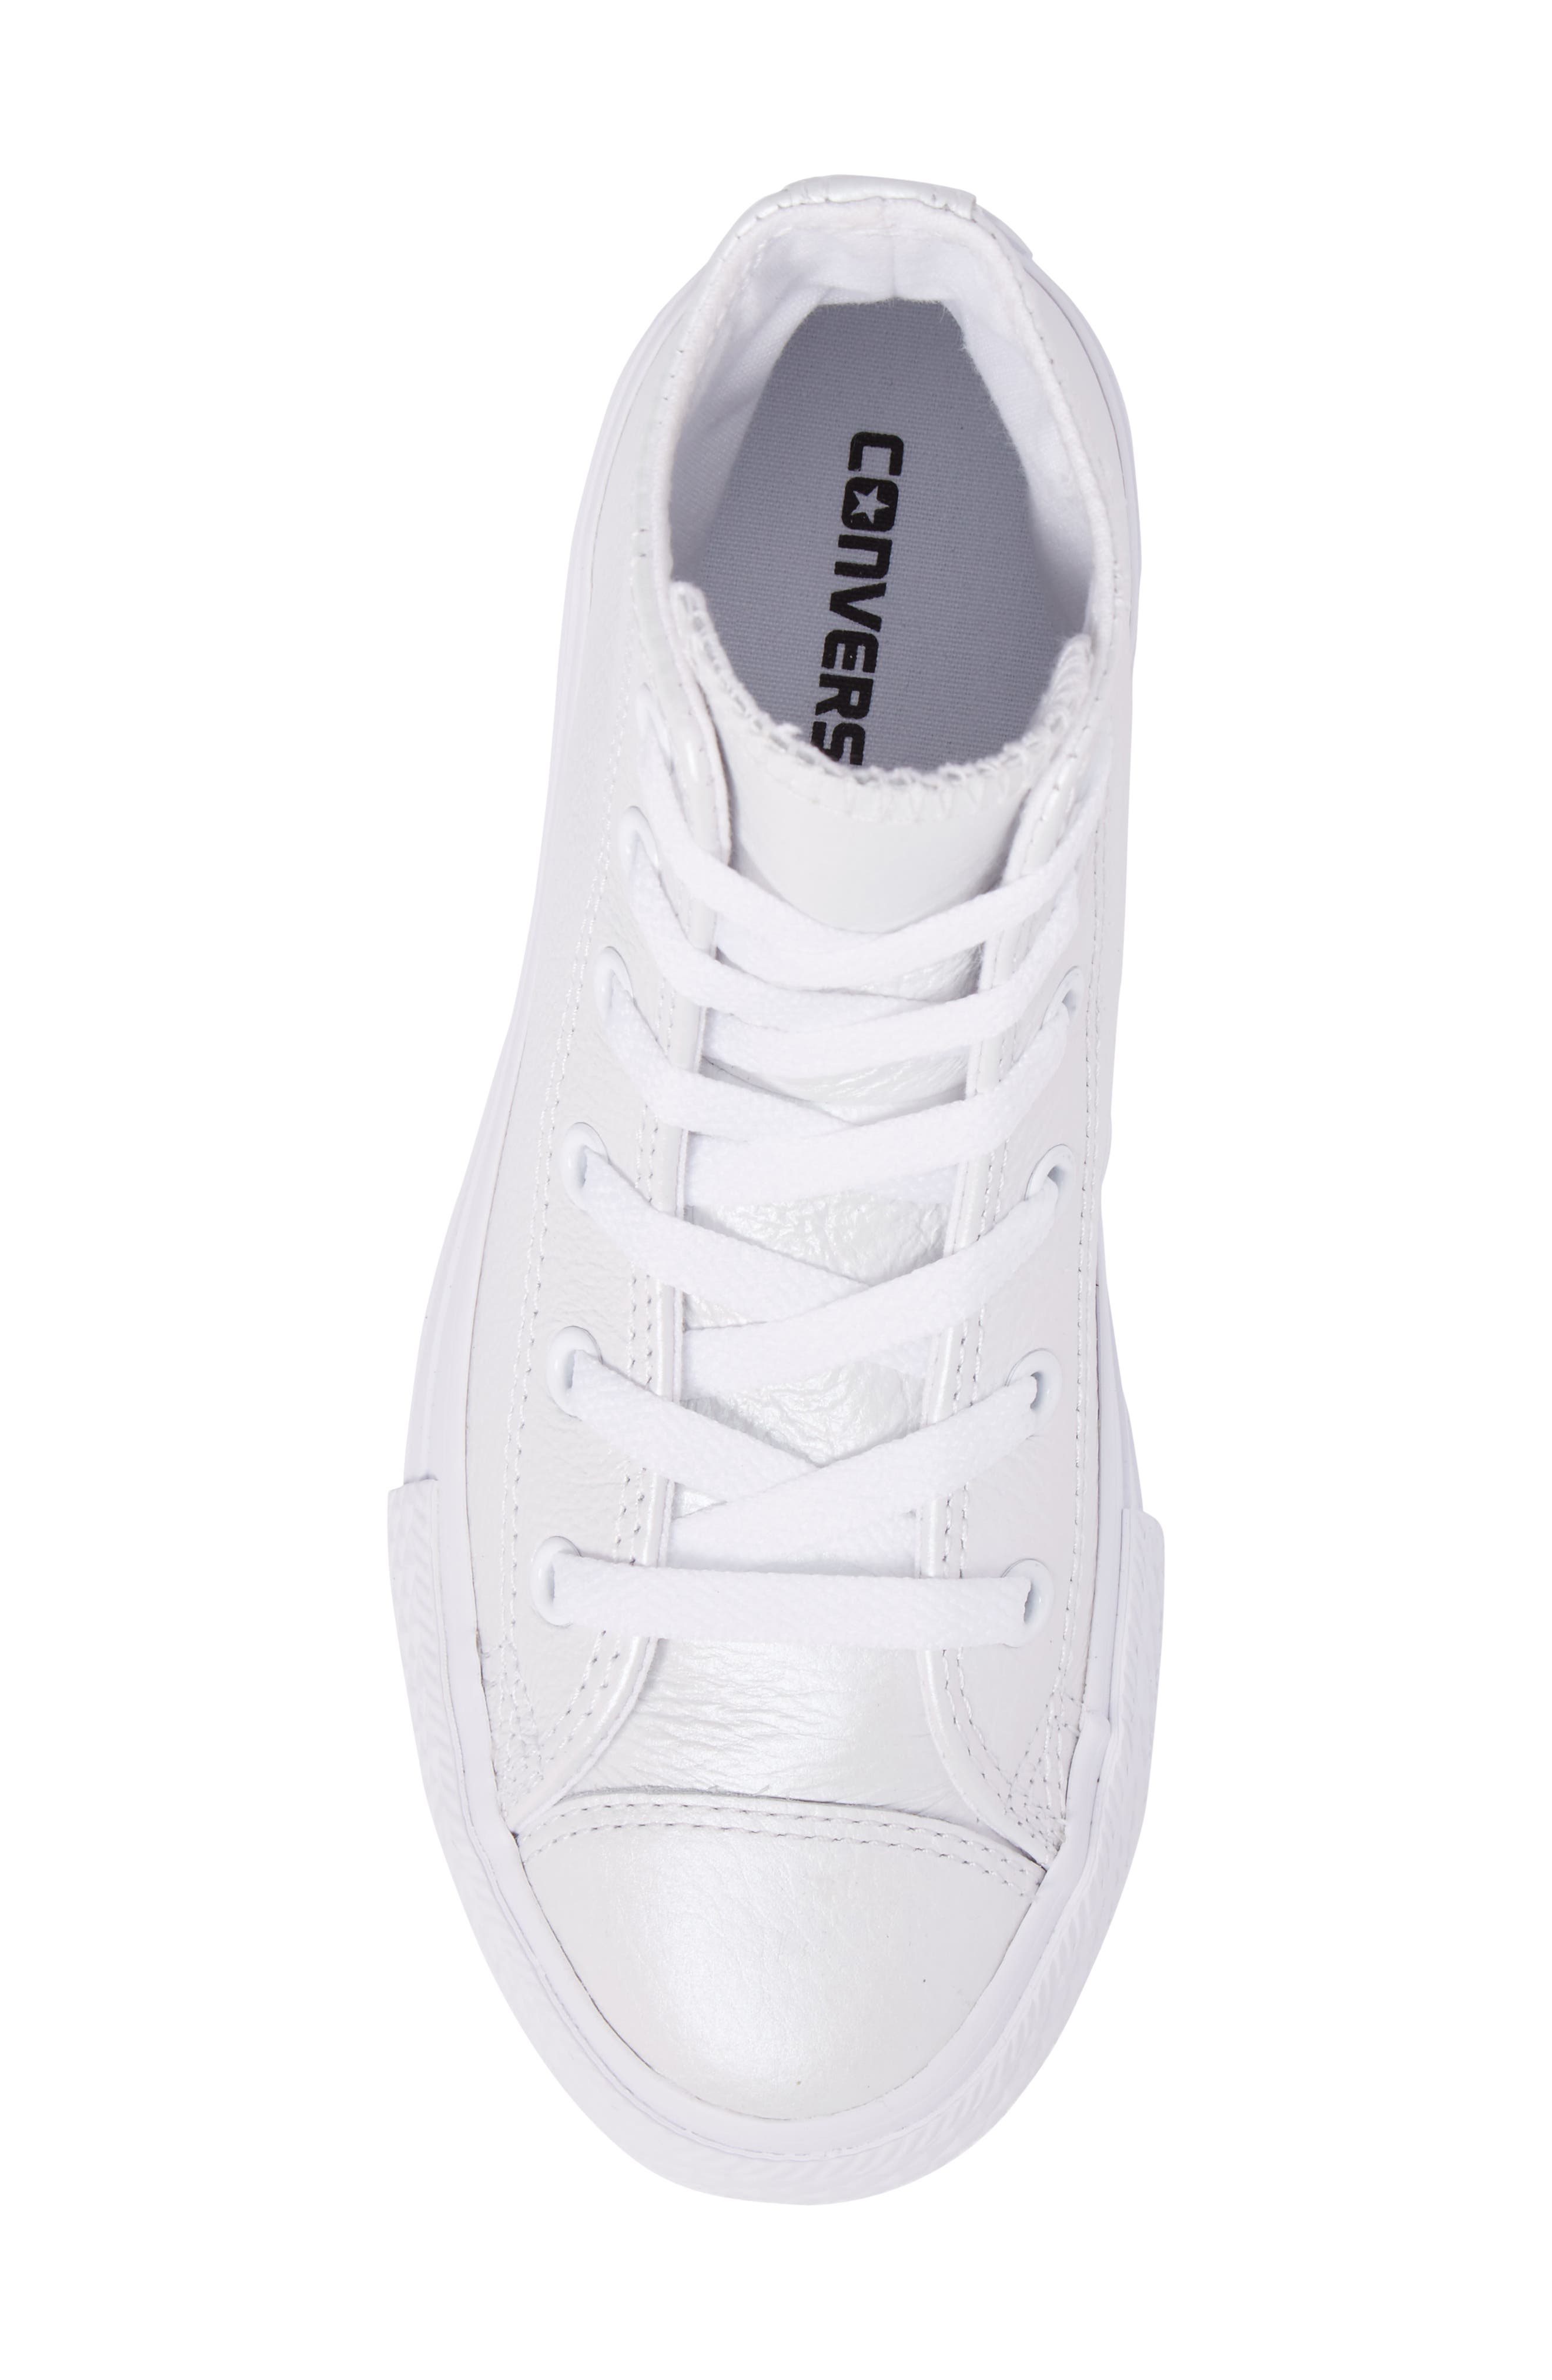 Chuck Taylor<sup>®</sup> All Star<sup>®</sup> Iridescent Leather High Top Sneaker,                             Alternate thumbnail 5, color,                             White Leather